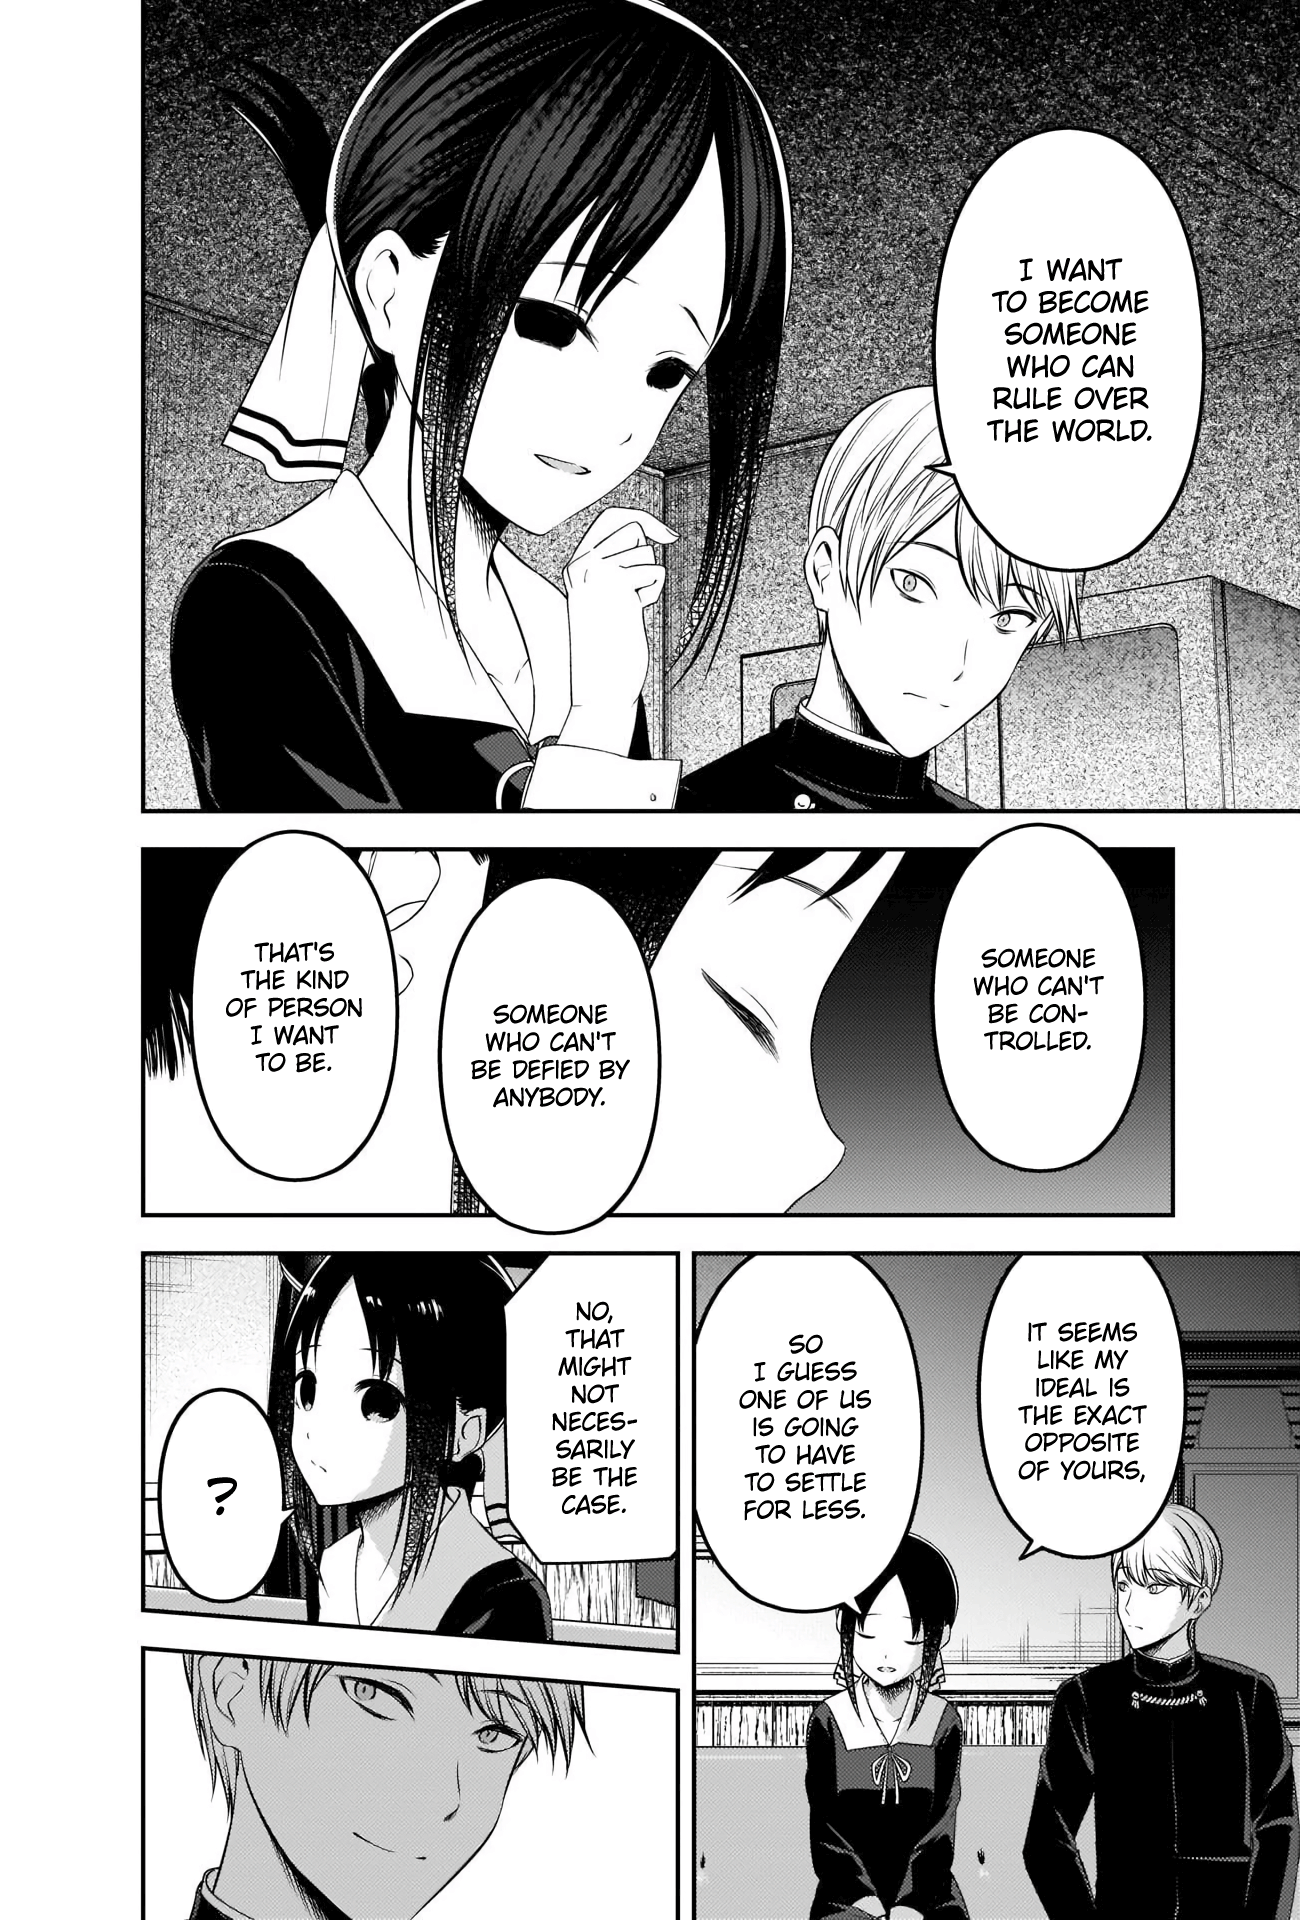 kaguya sama manga,kaguya manga,kaguya sama manga online, kaguya sama love is war episodes,kaguya sama love is war,kaguya sama love is war manga reddit,kaguya sama love is war reddit,kaguya sama love is war manga baka updates,kaguya sama love is war mangahere,kaguya sama love is war read,kaguya sama love is war chapter 142,kaguya sama love is war read online,kaguya sama love is war kissmanga,kaguya sama reddit,miyuki shirogane,kaguya-sama: love is war (film),aka akasaka,aka akasaka face,aka akasaka gender,aka akasaka interview,kaguya sama love is war aka akasaka